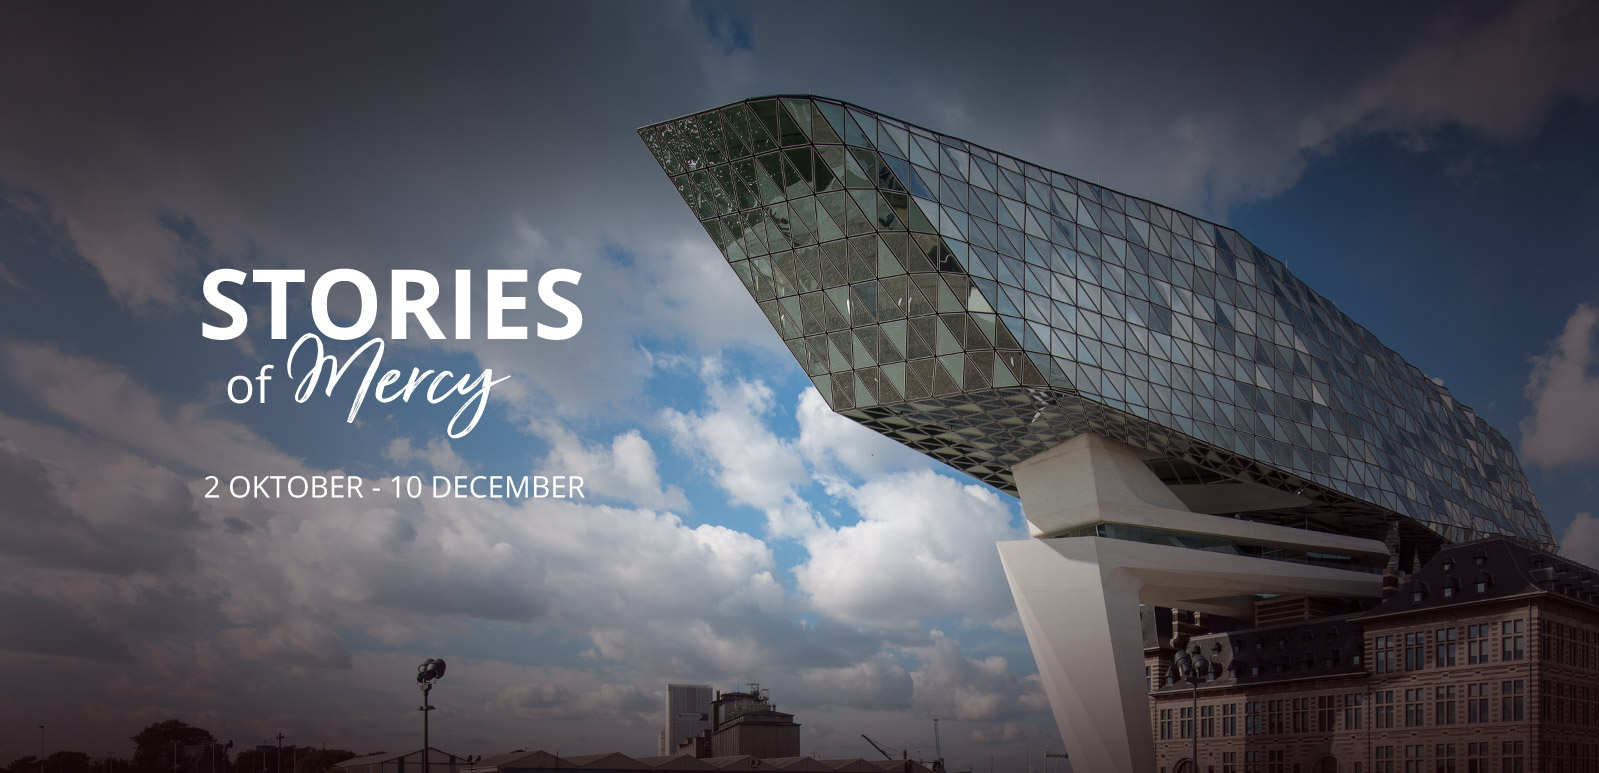 Port-of-Antwerp-Havenhuis-MercyShips-Stories-of-Mercy